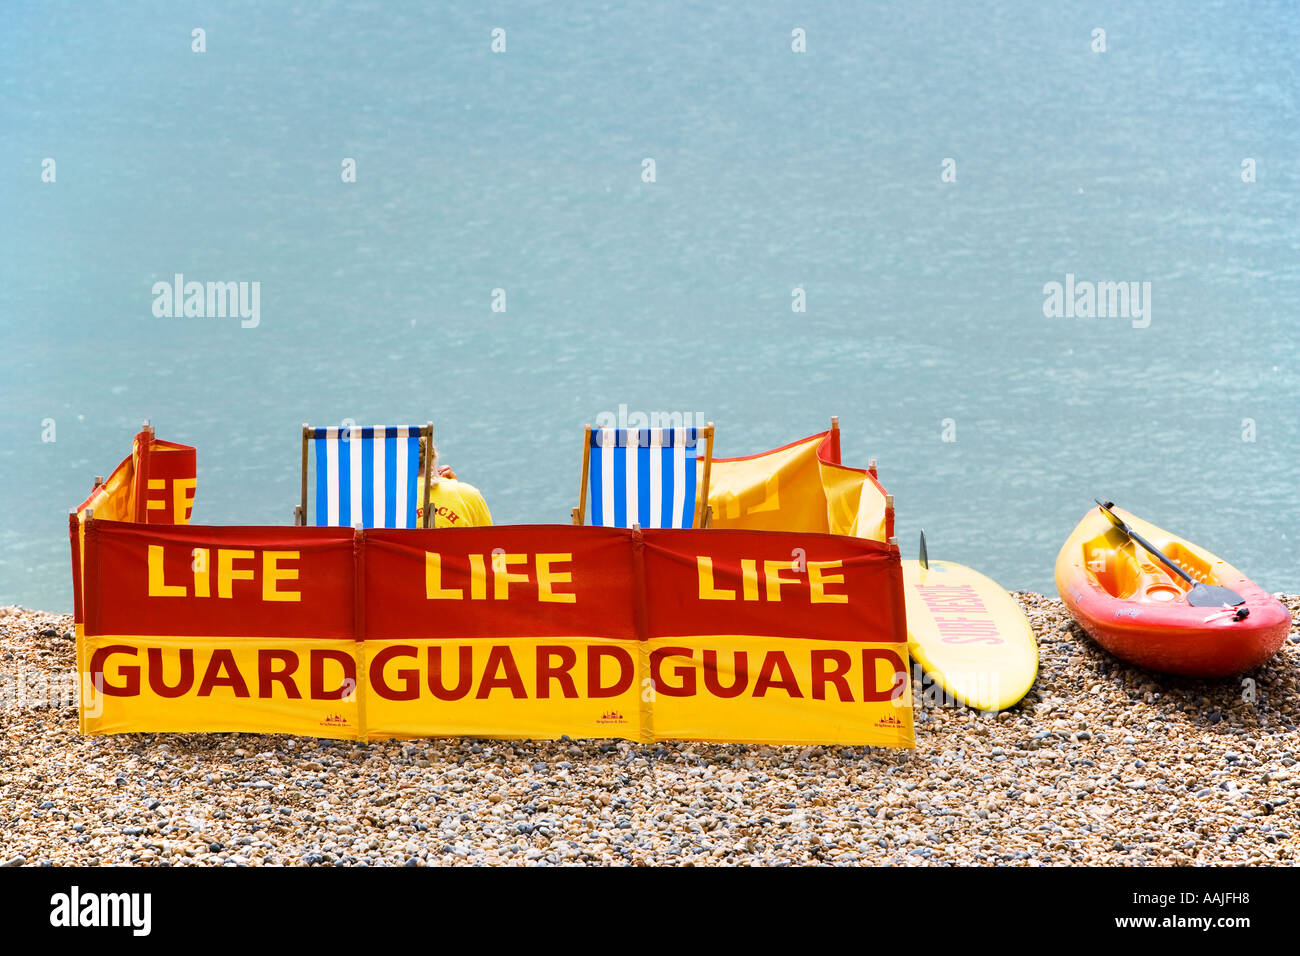 Life guards on a beach at Brighton England - Stock Image